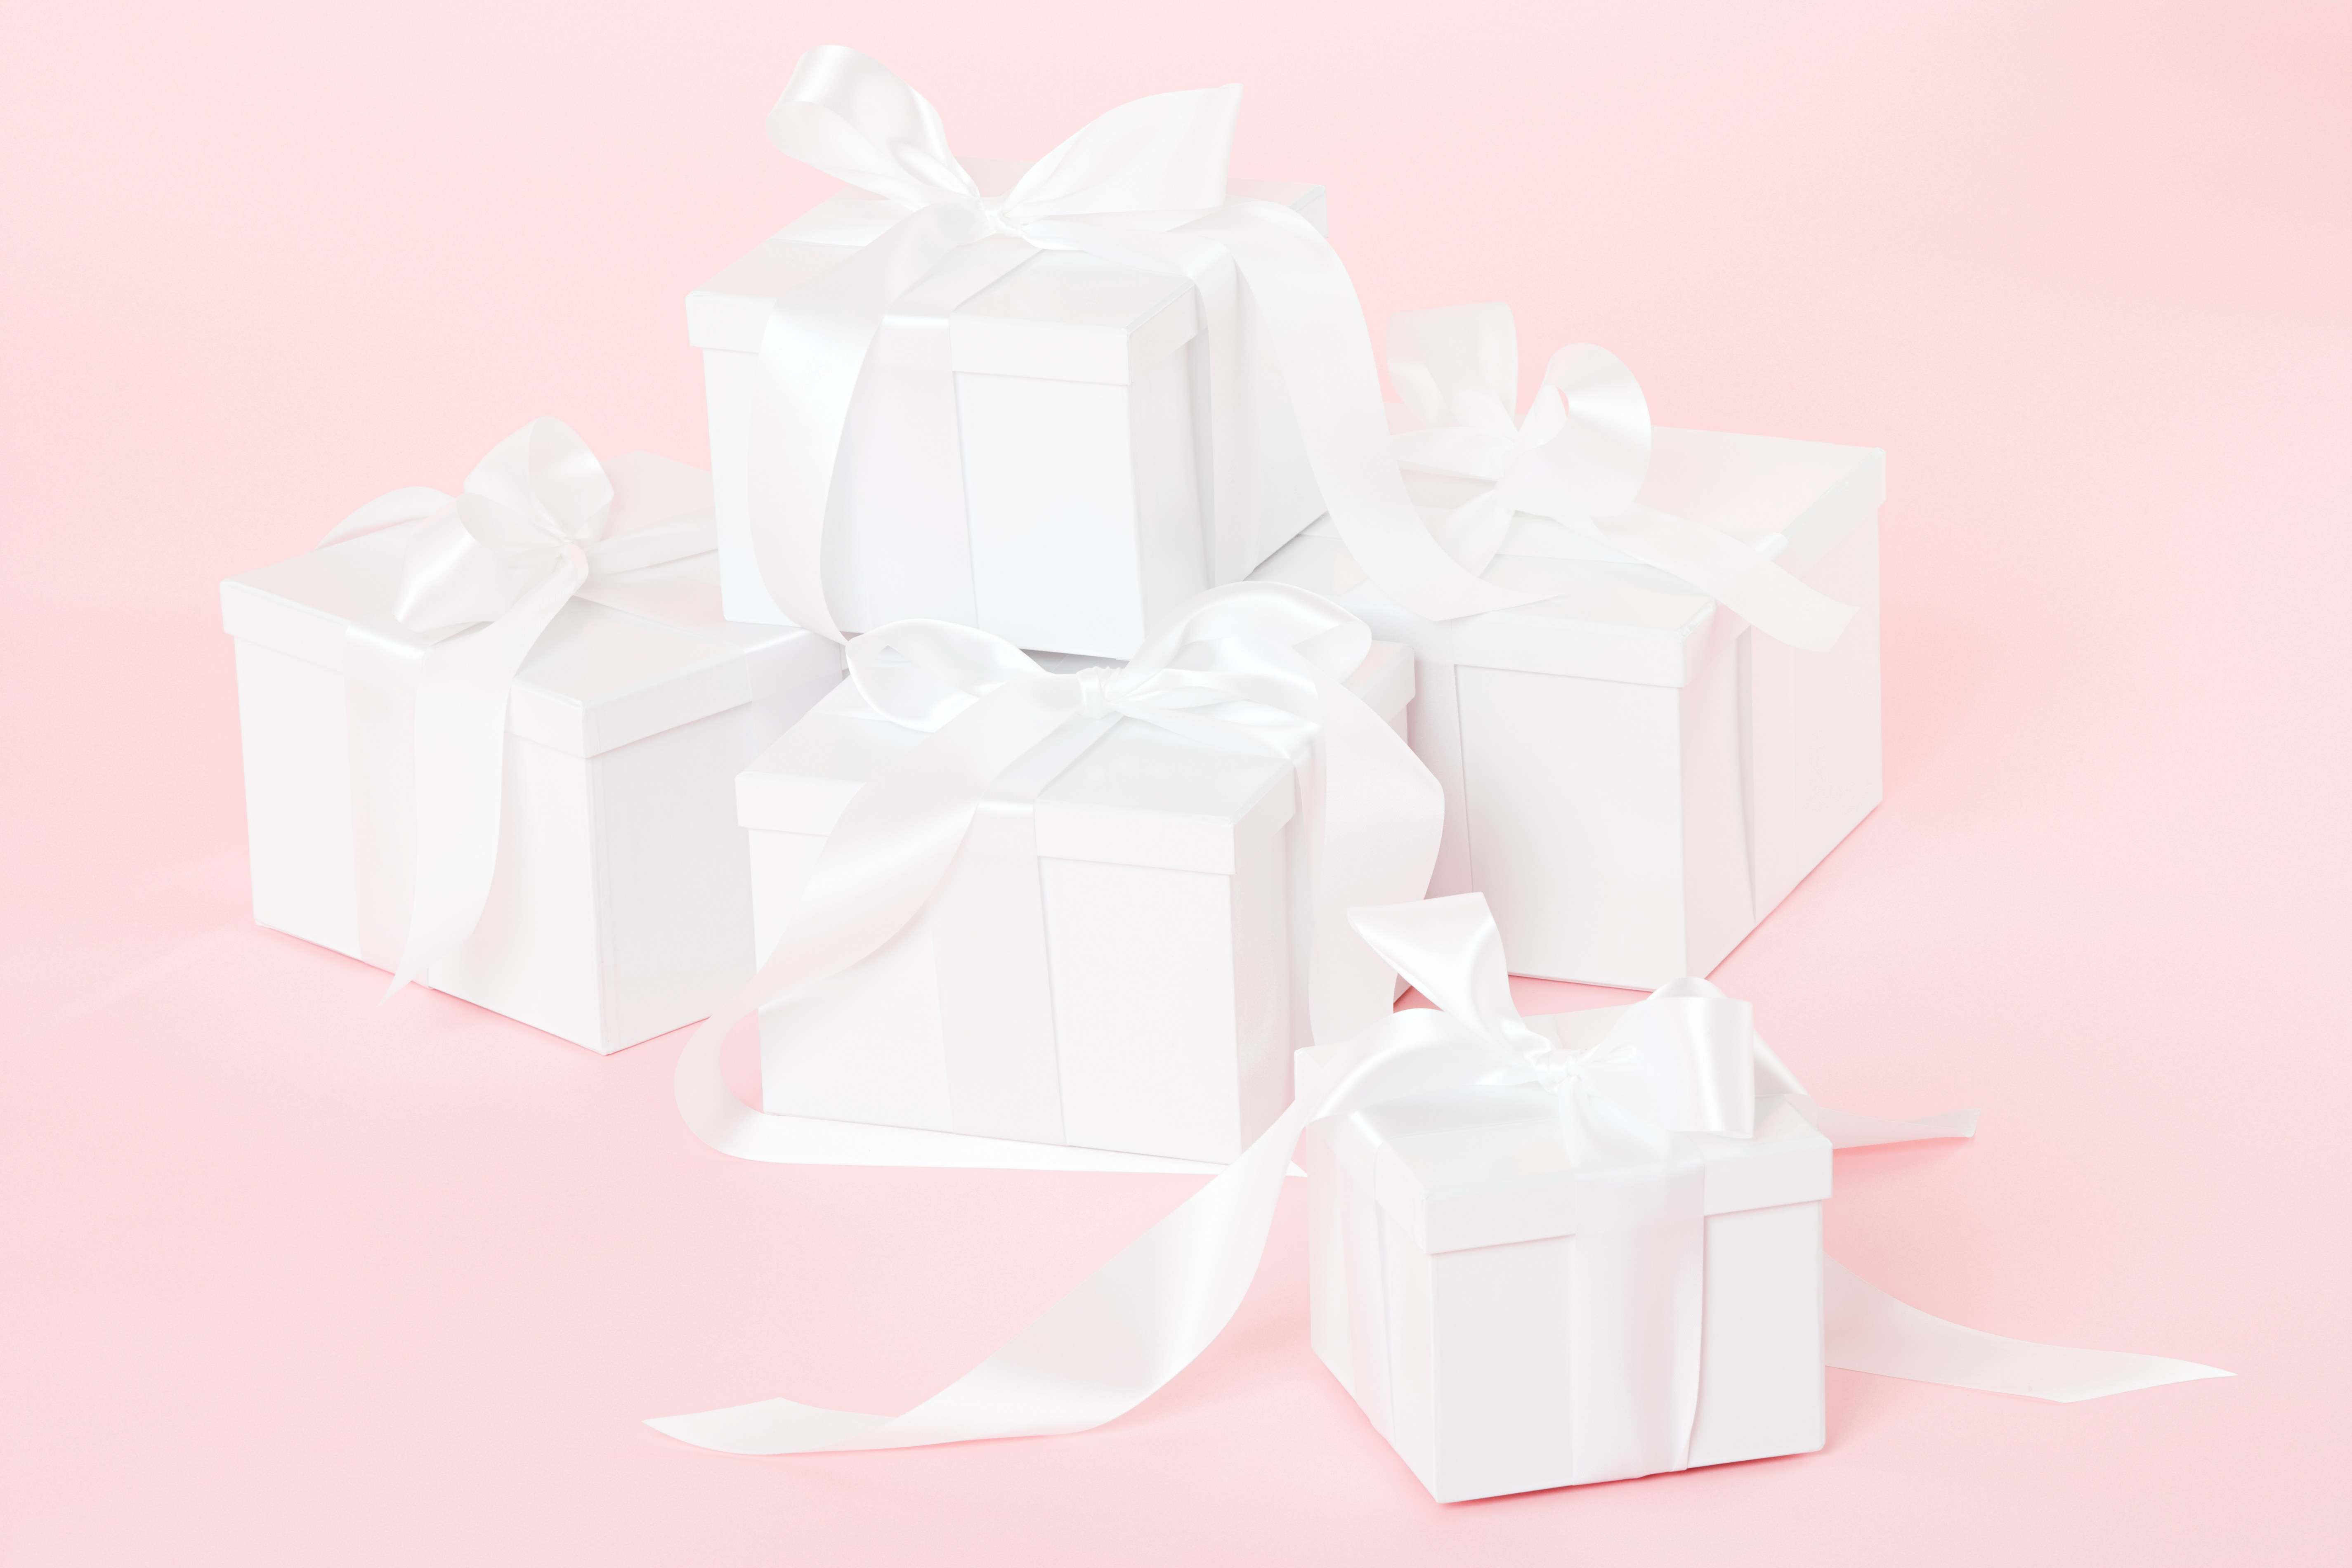 59a01389f25d5 Engagement Gifts That Are $50 and Under | Martha Stewart Weddings